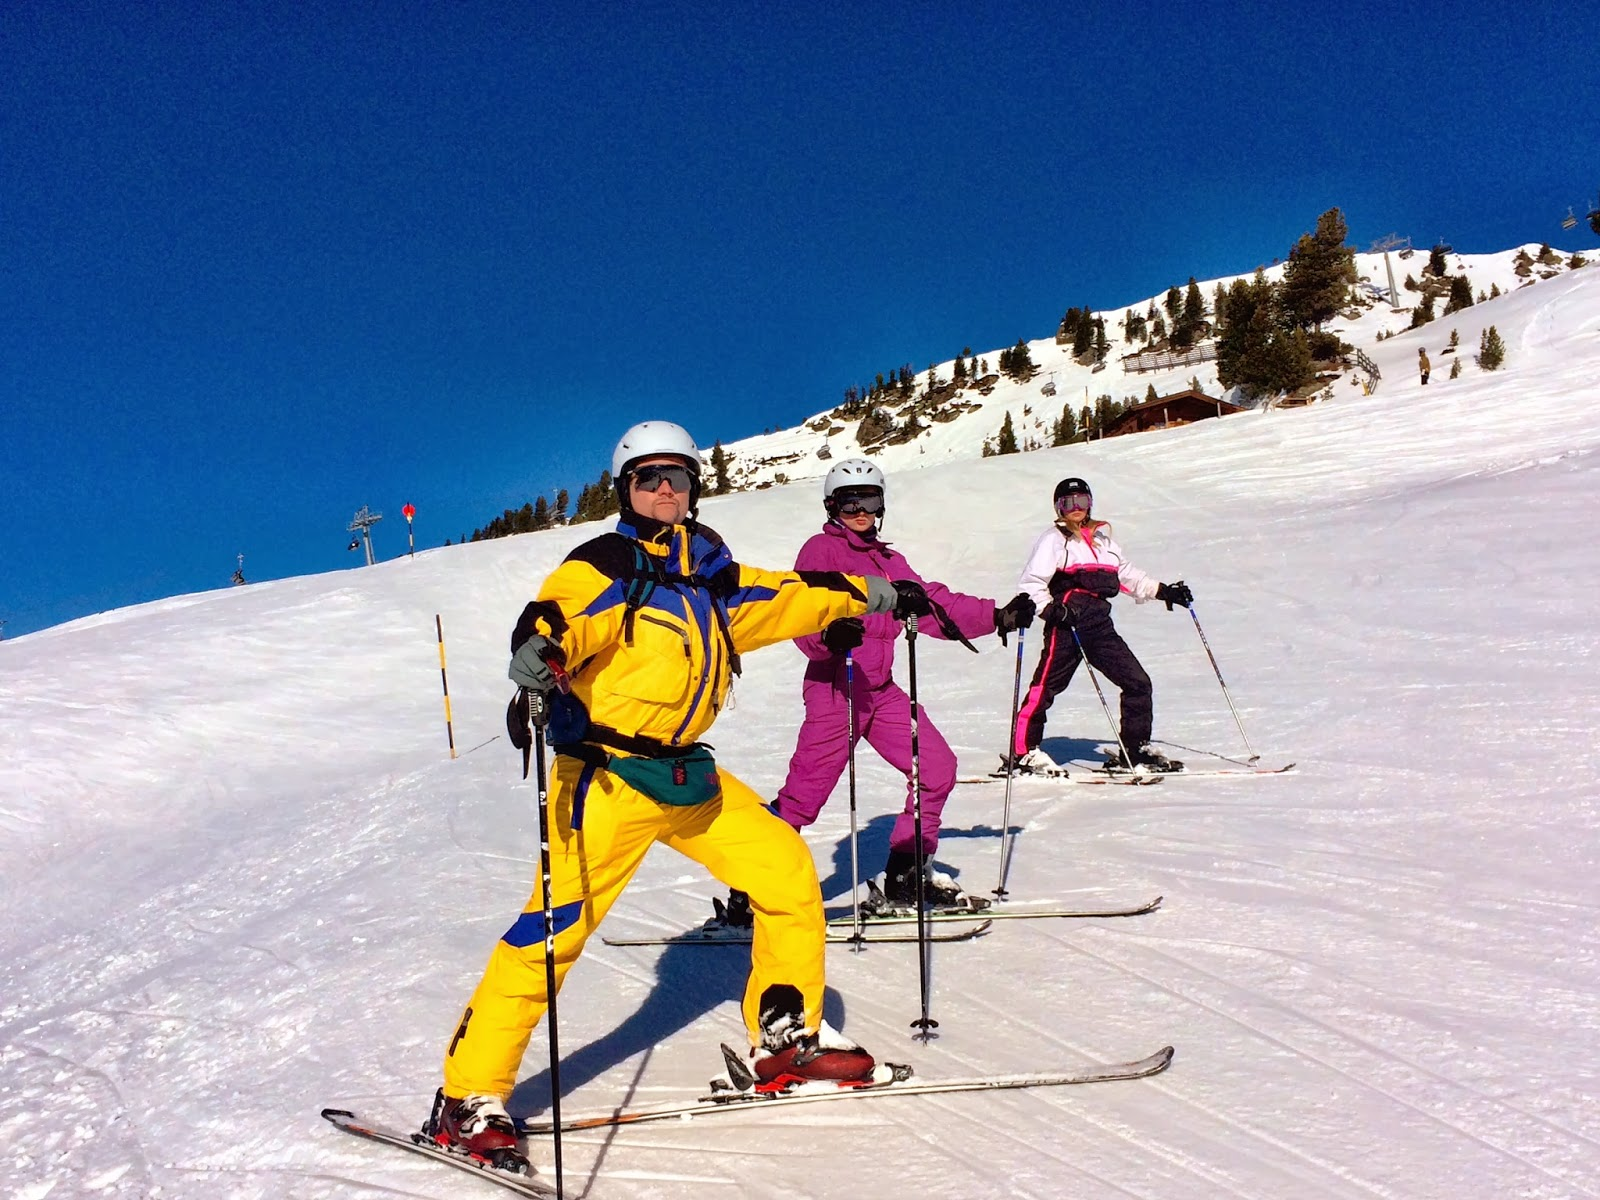 All in one ski suits - Mayrhofen